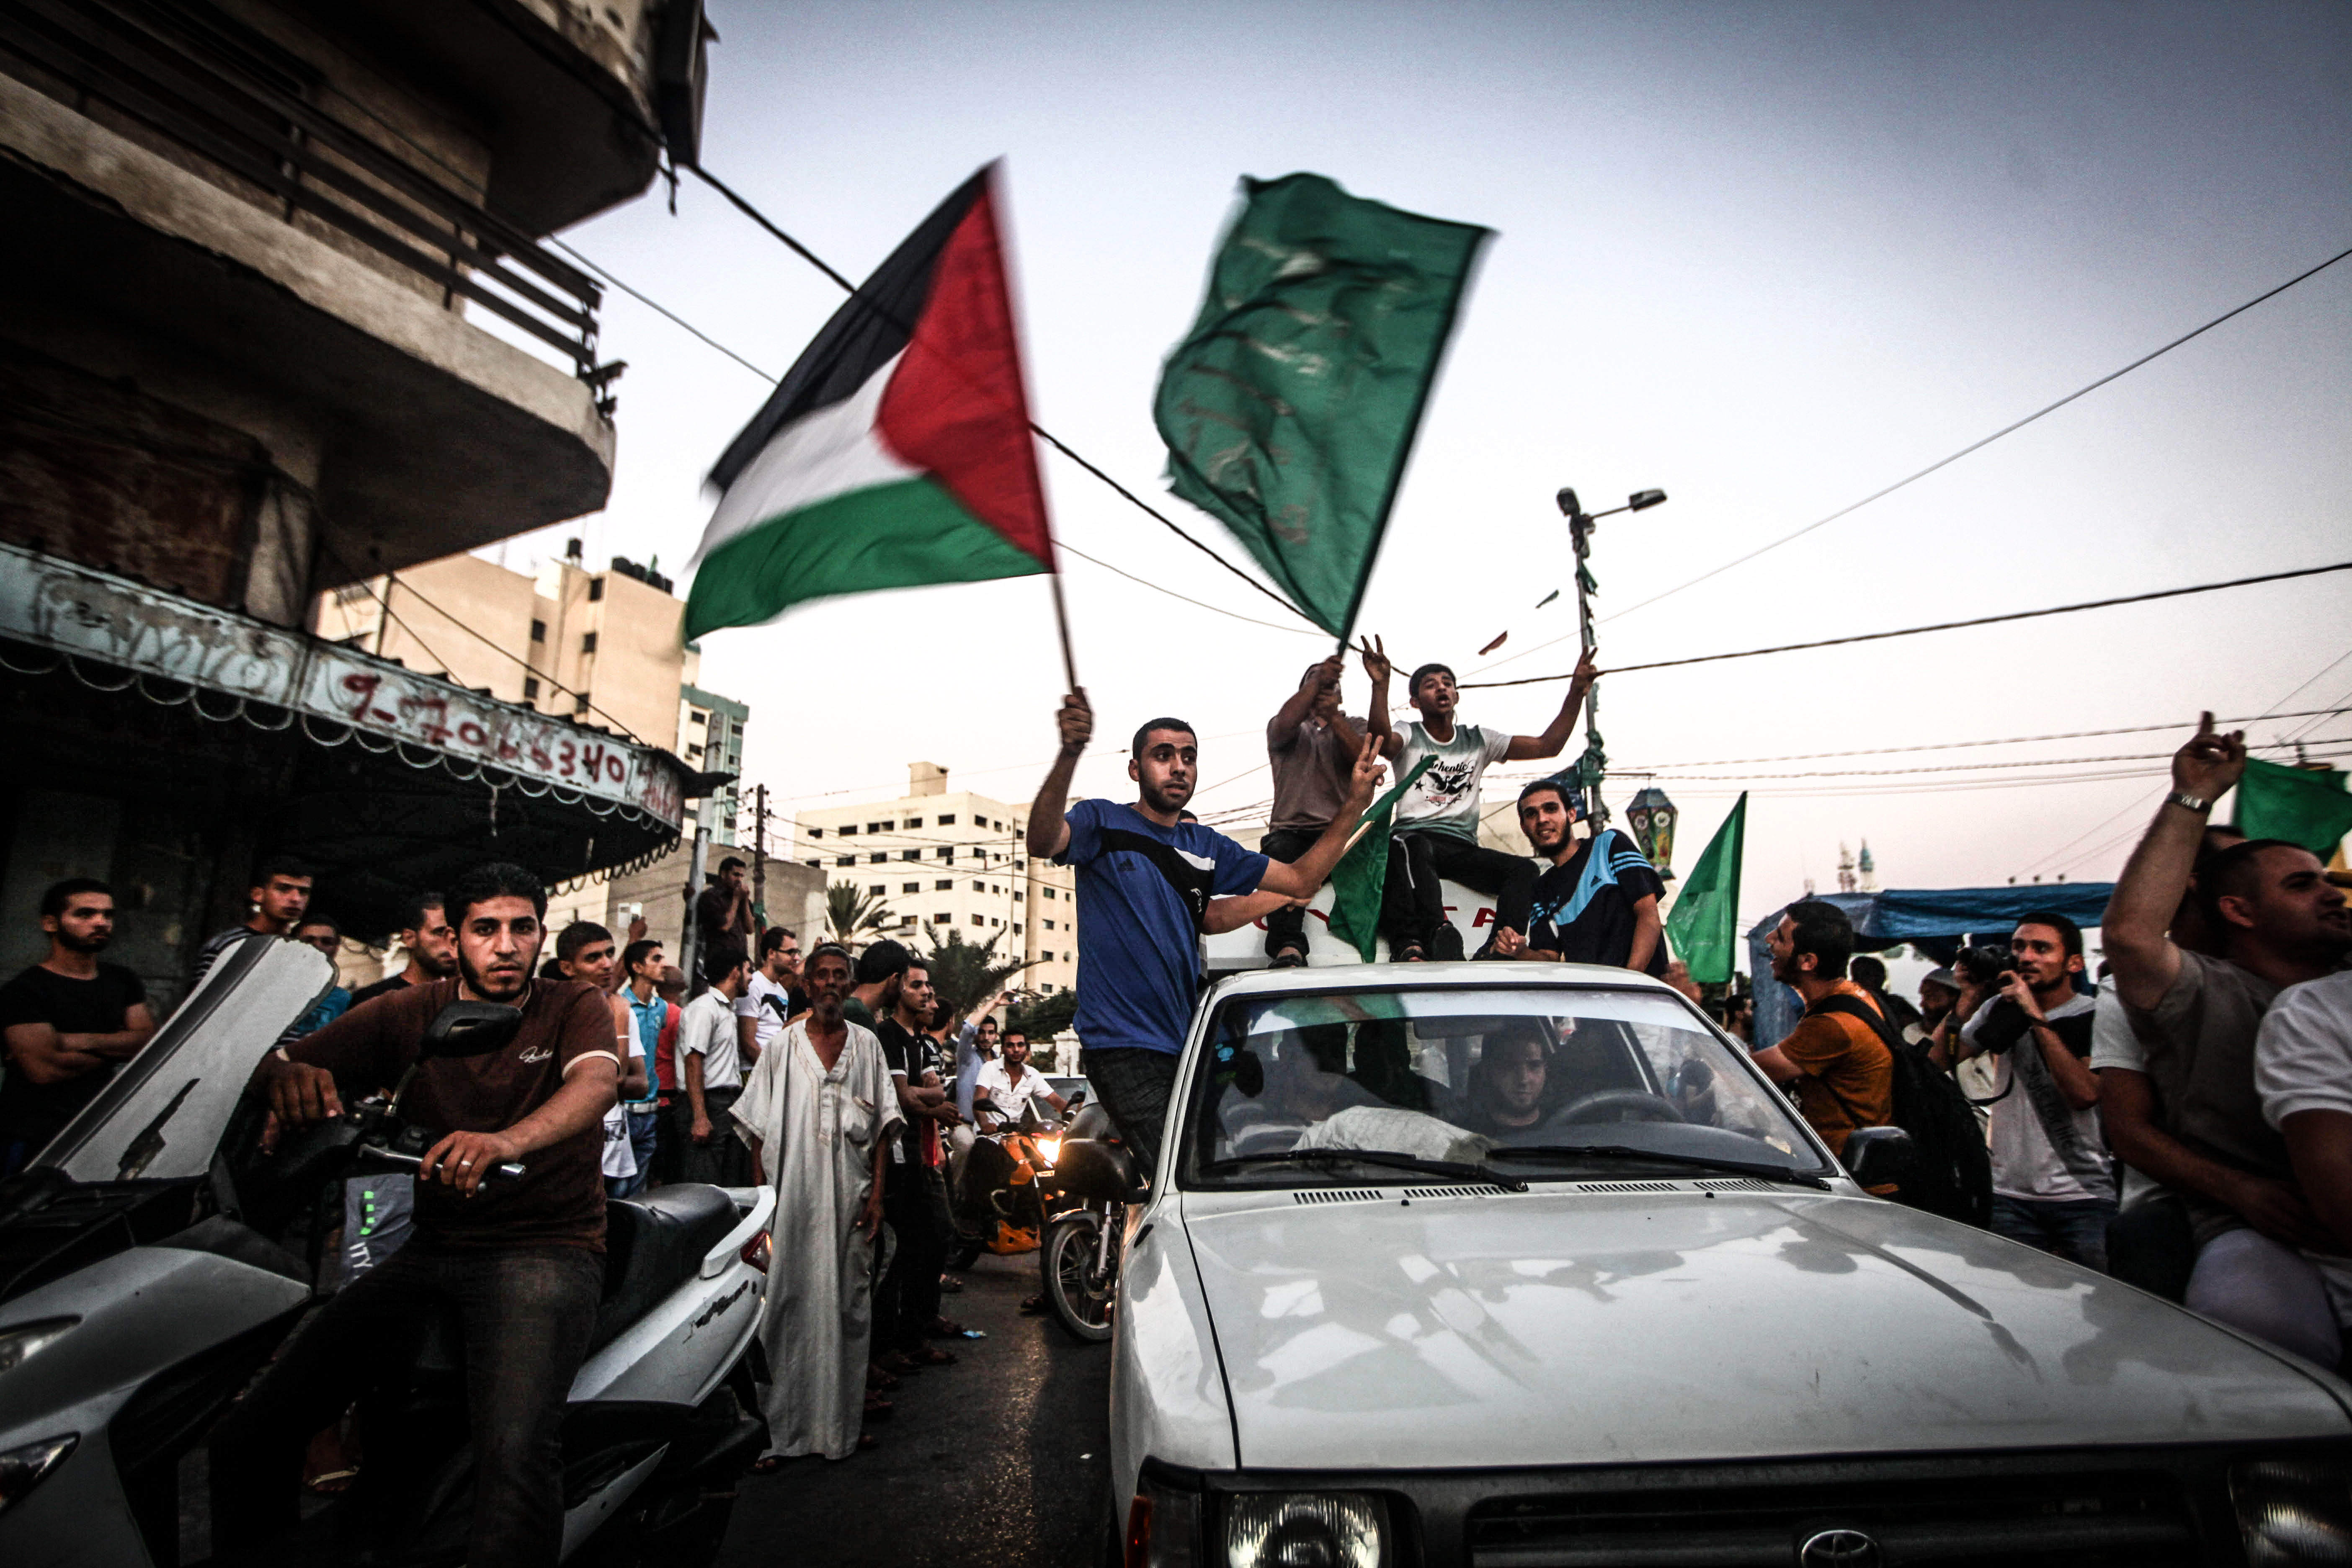 Palestinians in Gaza City celebrate in the streets after a deal had been reached between Hamas and Israel over a long-term end to seven weeks of fighting in the Gaza Strip on Aug. 26, 2014